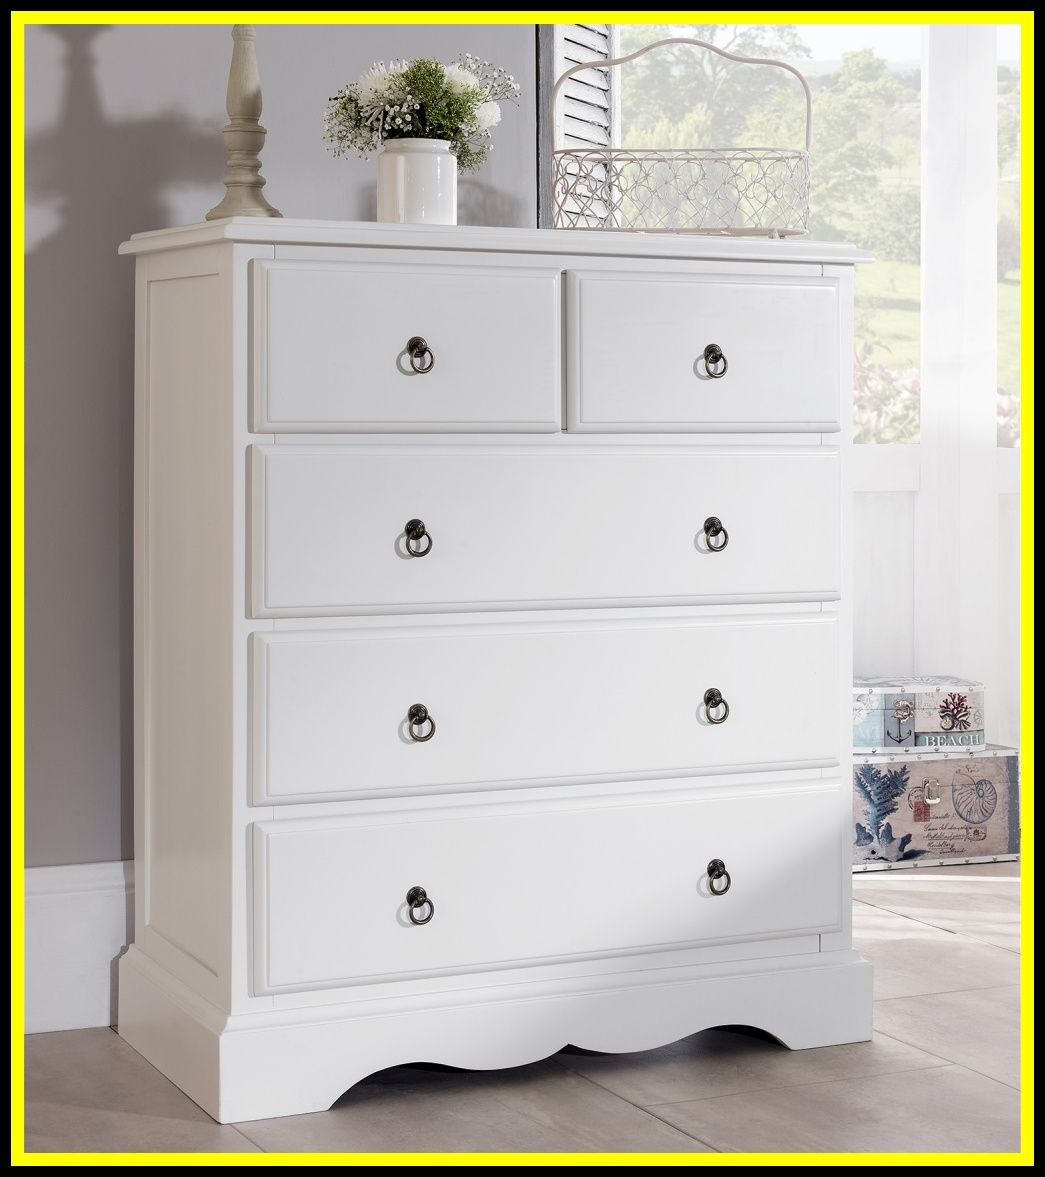 81 Reference Of Dresser Drawers Deep In 2020 Bedroom Chest Of Drawers White Chest Of Drawers Large Chest Of Drawers [ 1177 x 1045 Pixel ]